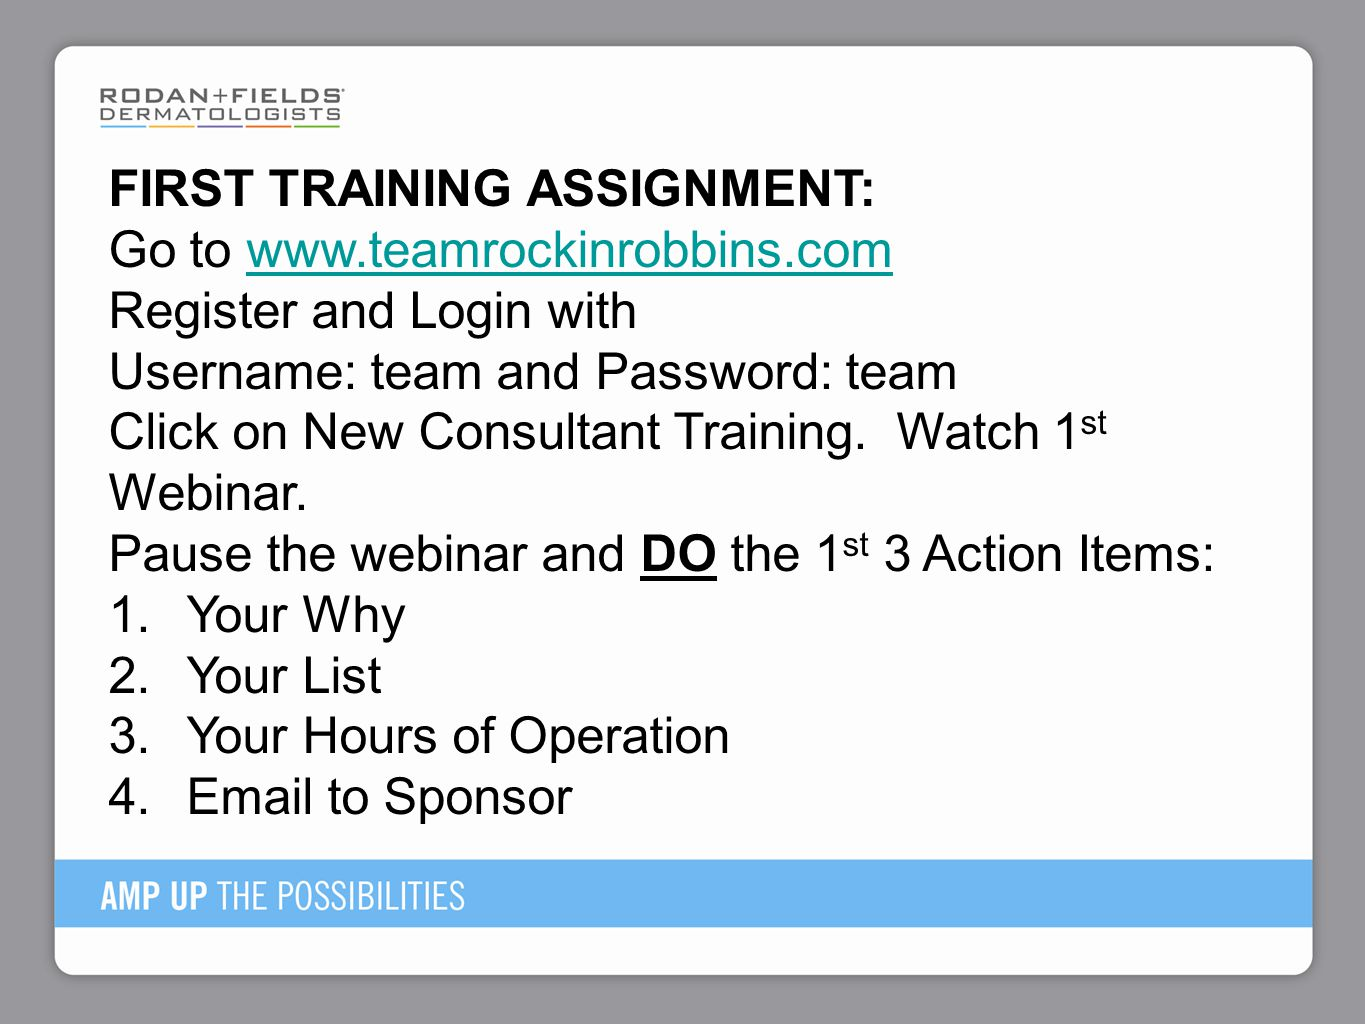 FIRST TRAINING ASSIGNMENT: Go to www.teamrockinrobbins.comwww.teamrockinrobbins.com Register and Login with Username: team and Password: team Click on